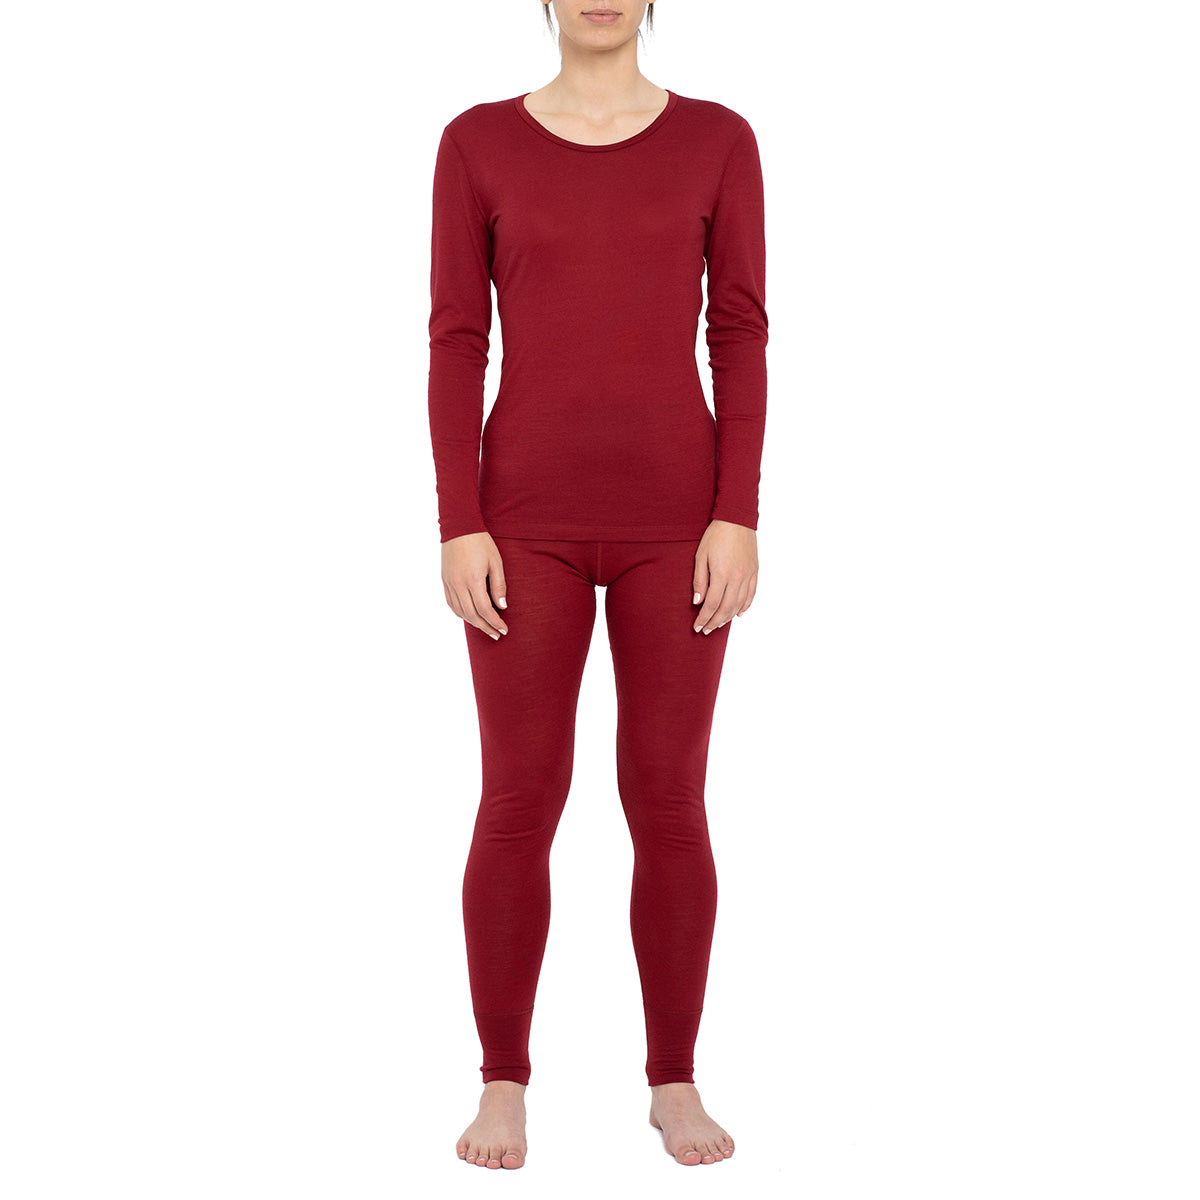 Women's Long Sleeve Set 160gsm Merino Wool Royal Cherry